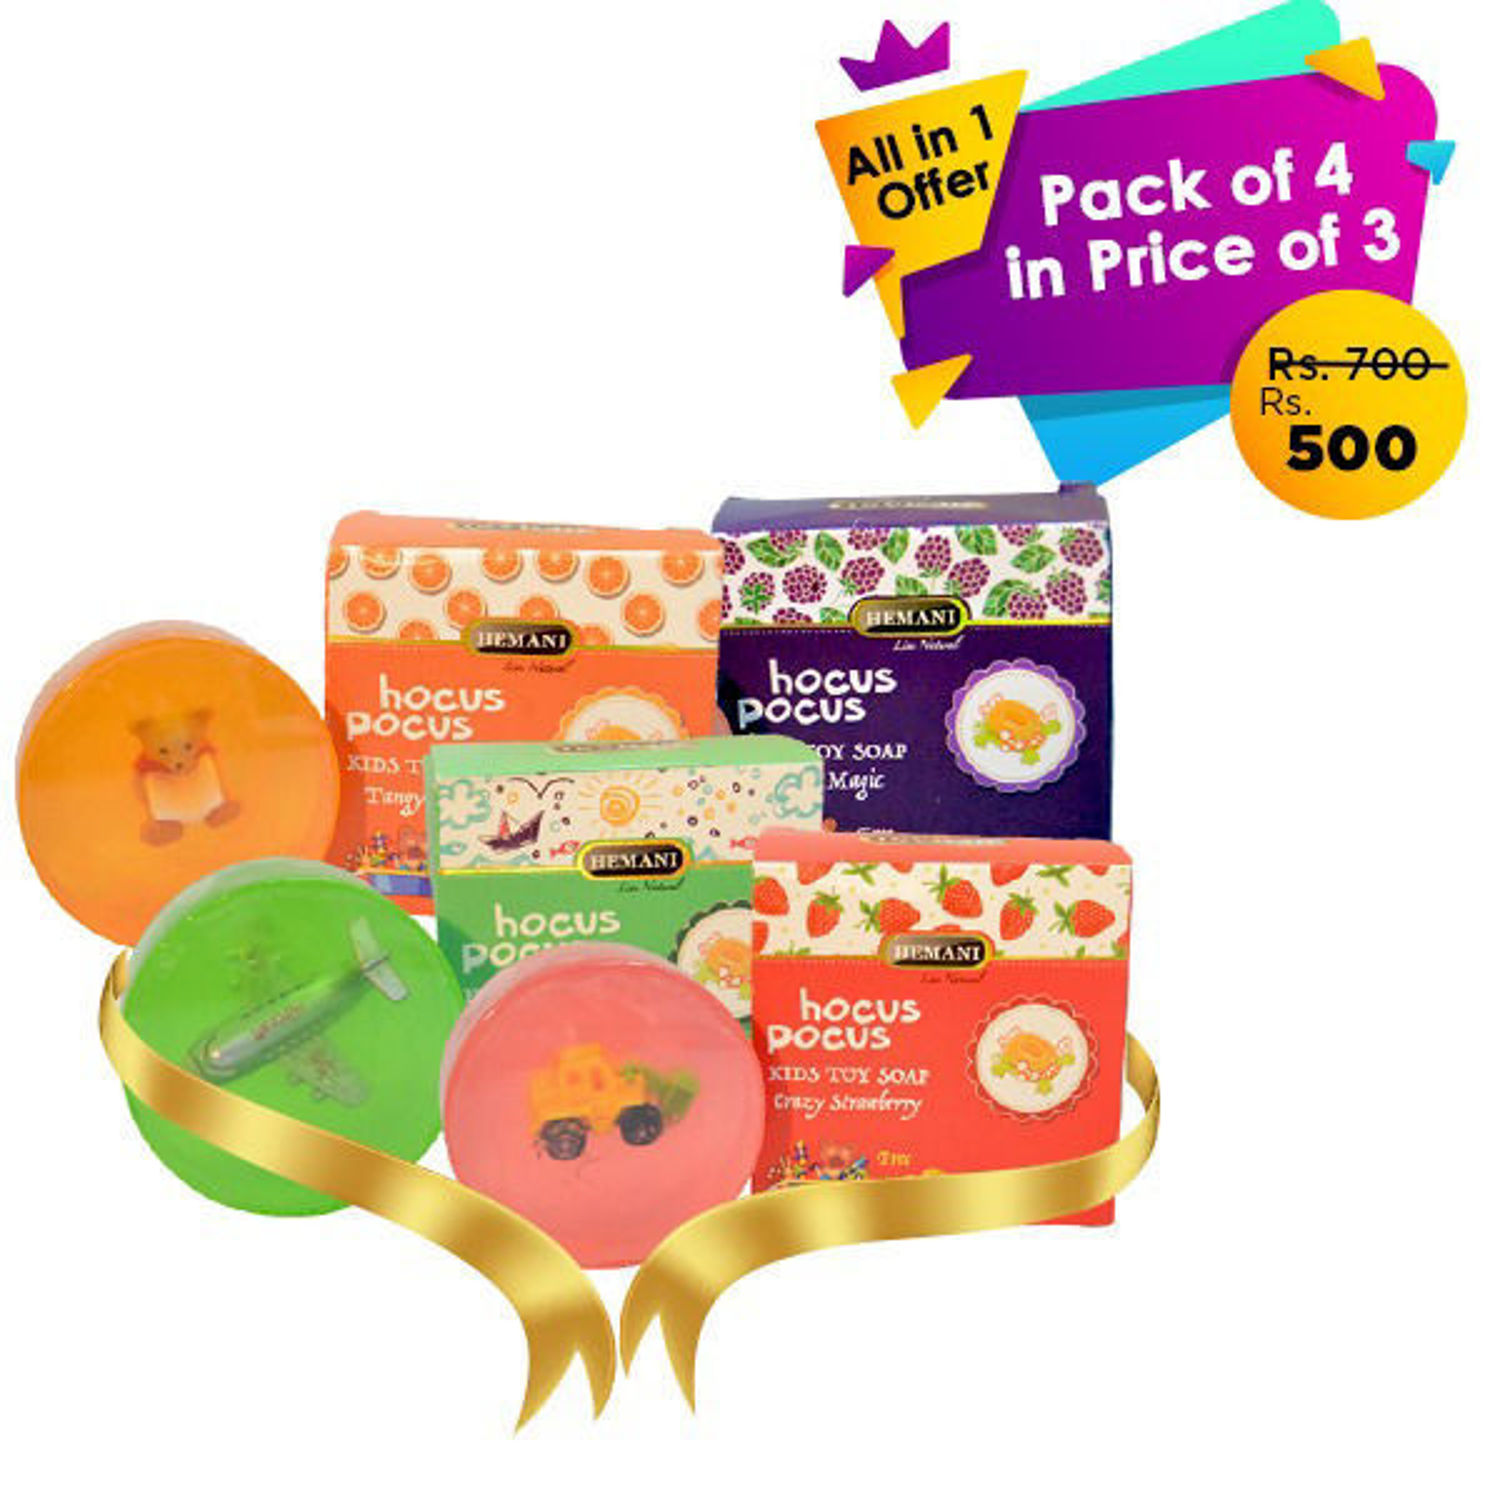 All in 1 pack of 4 in price of 3 (Kids Soaps)